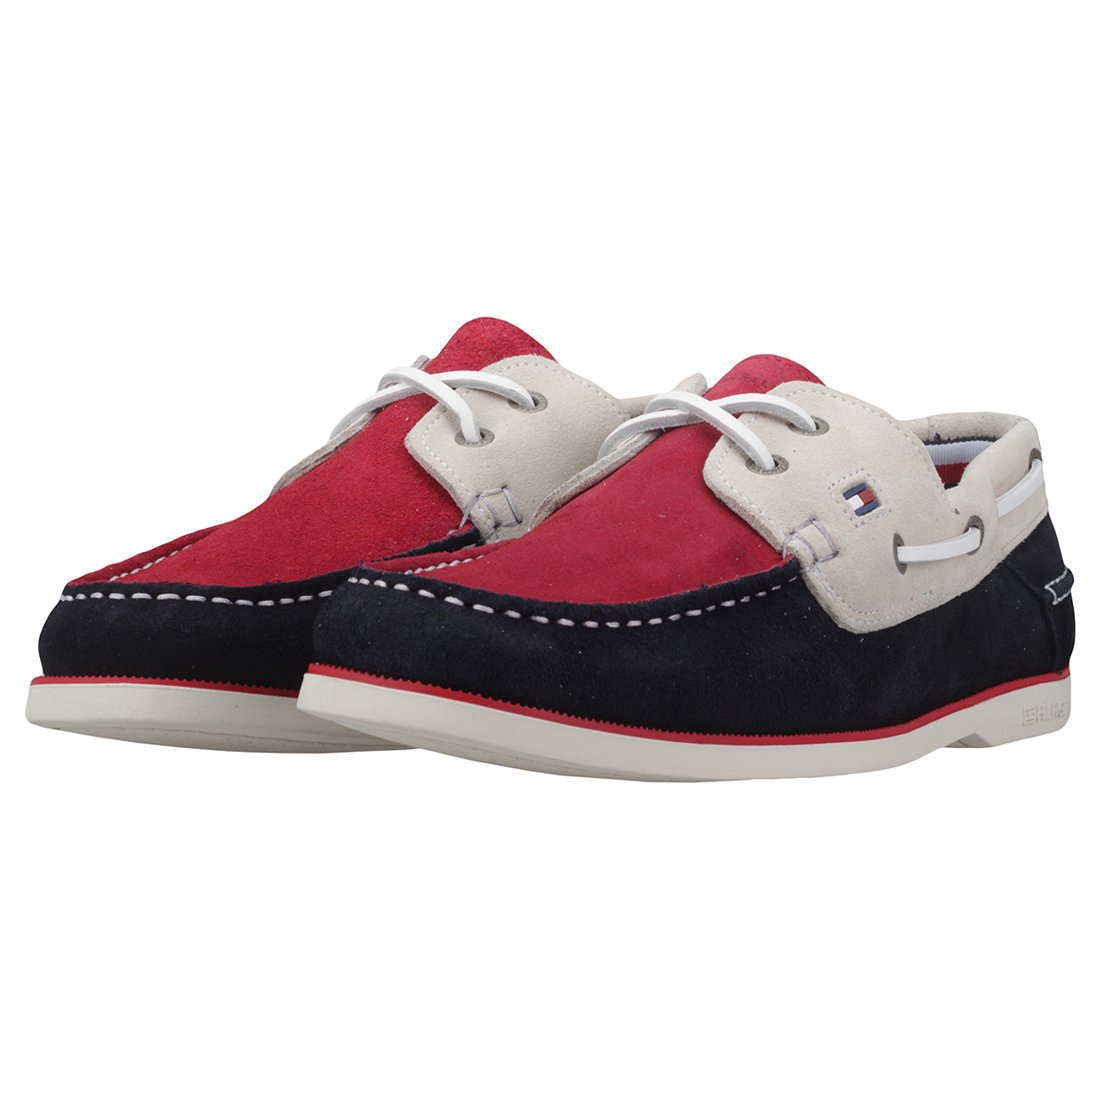 4d93507b226 Tommy Hilfiger Classic Suede Mens Boat Shoes Red Navy - 40 EU  Amazon.ca   Shoes   Handbags